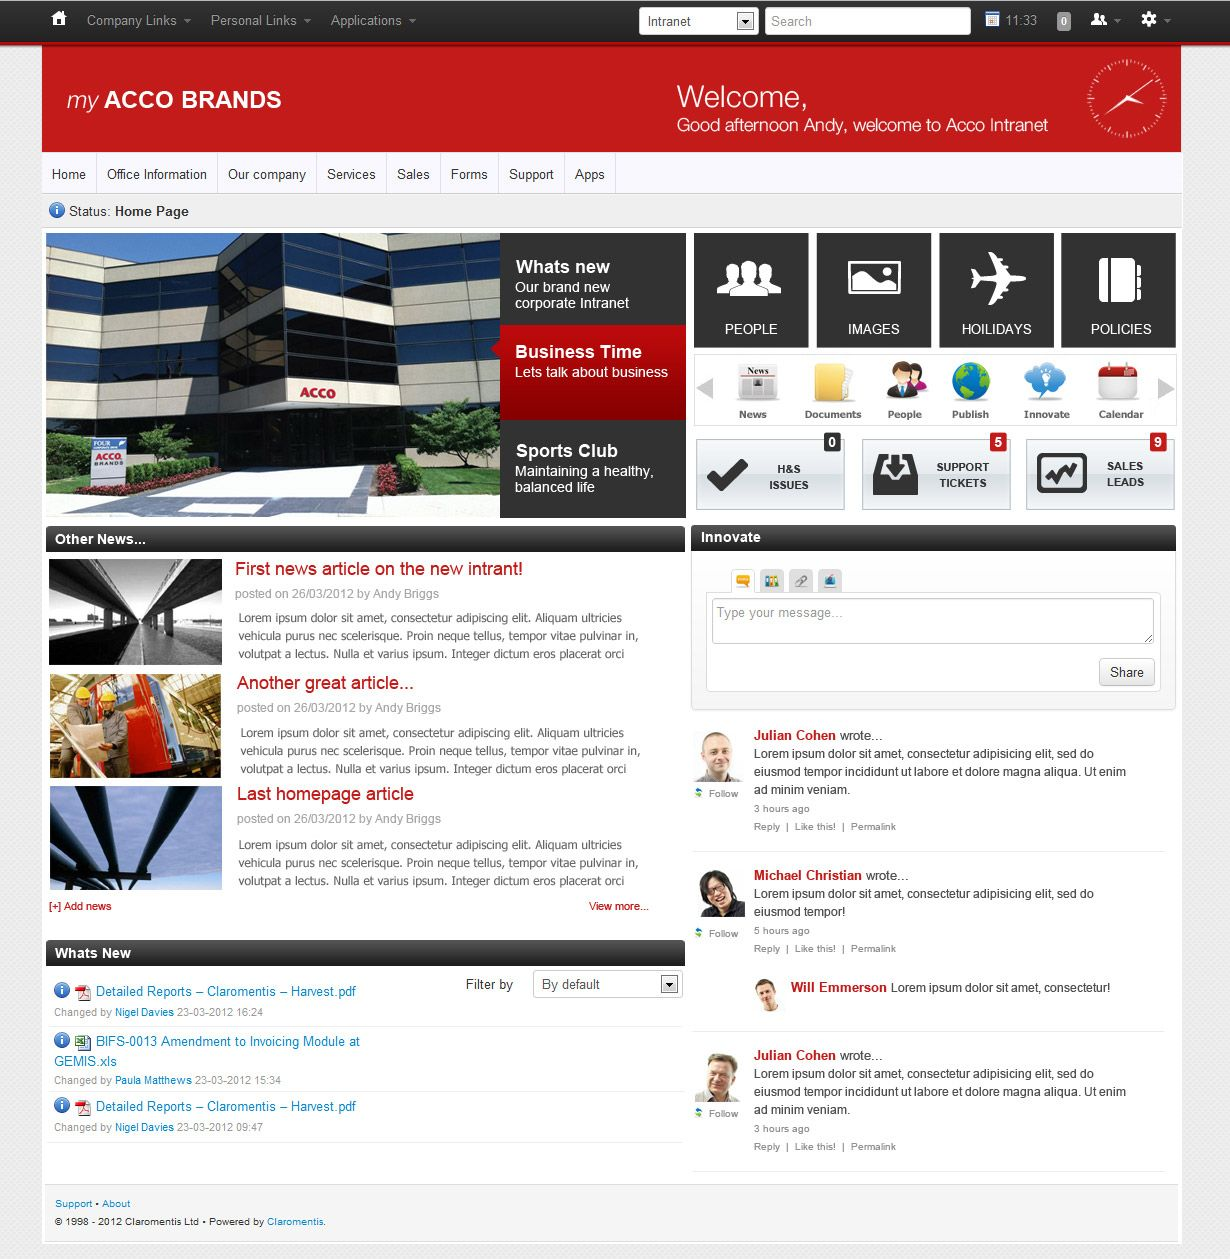 Intranet homepage design with a focus on sharing news